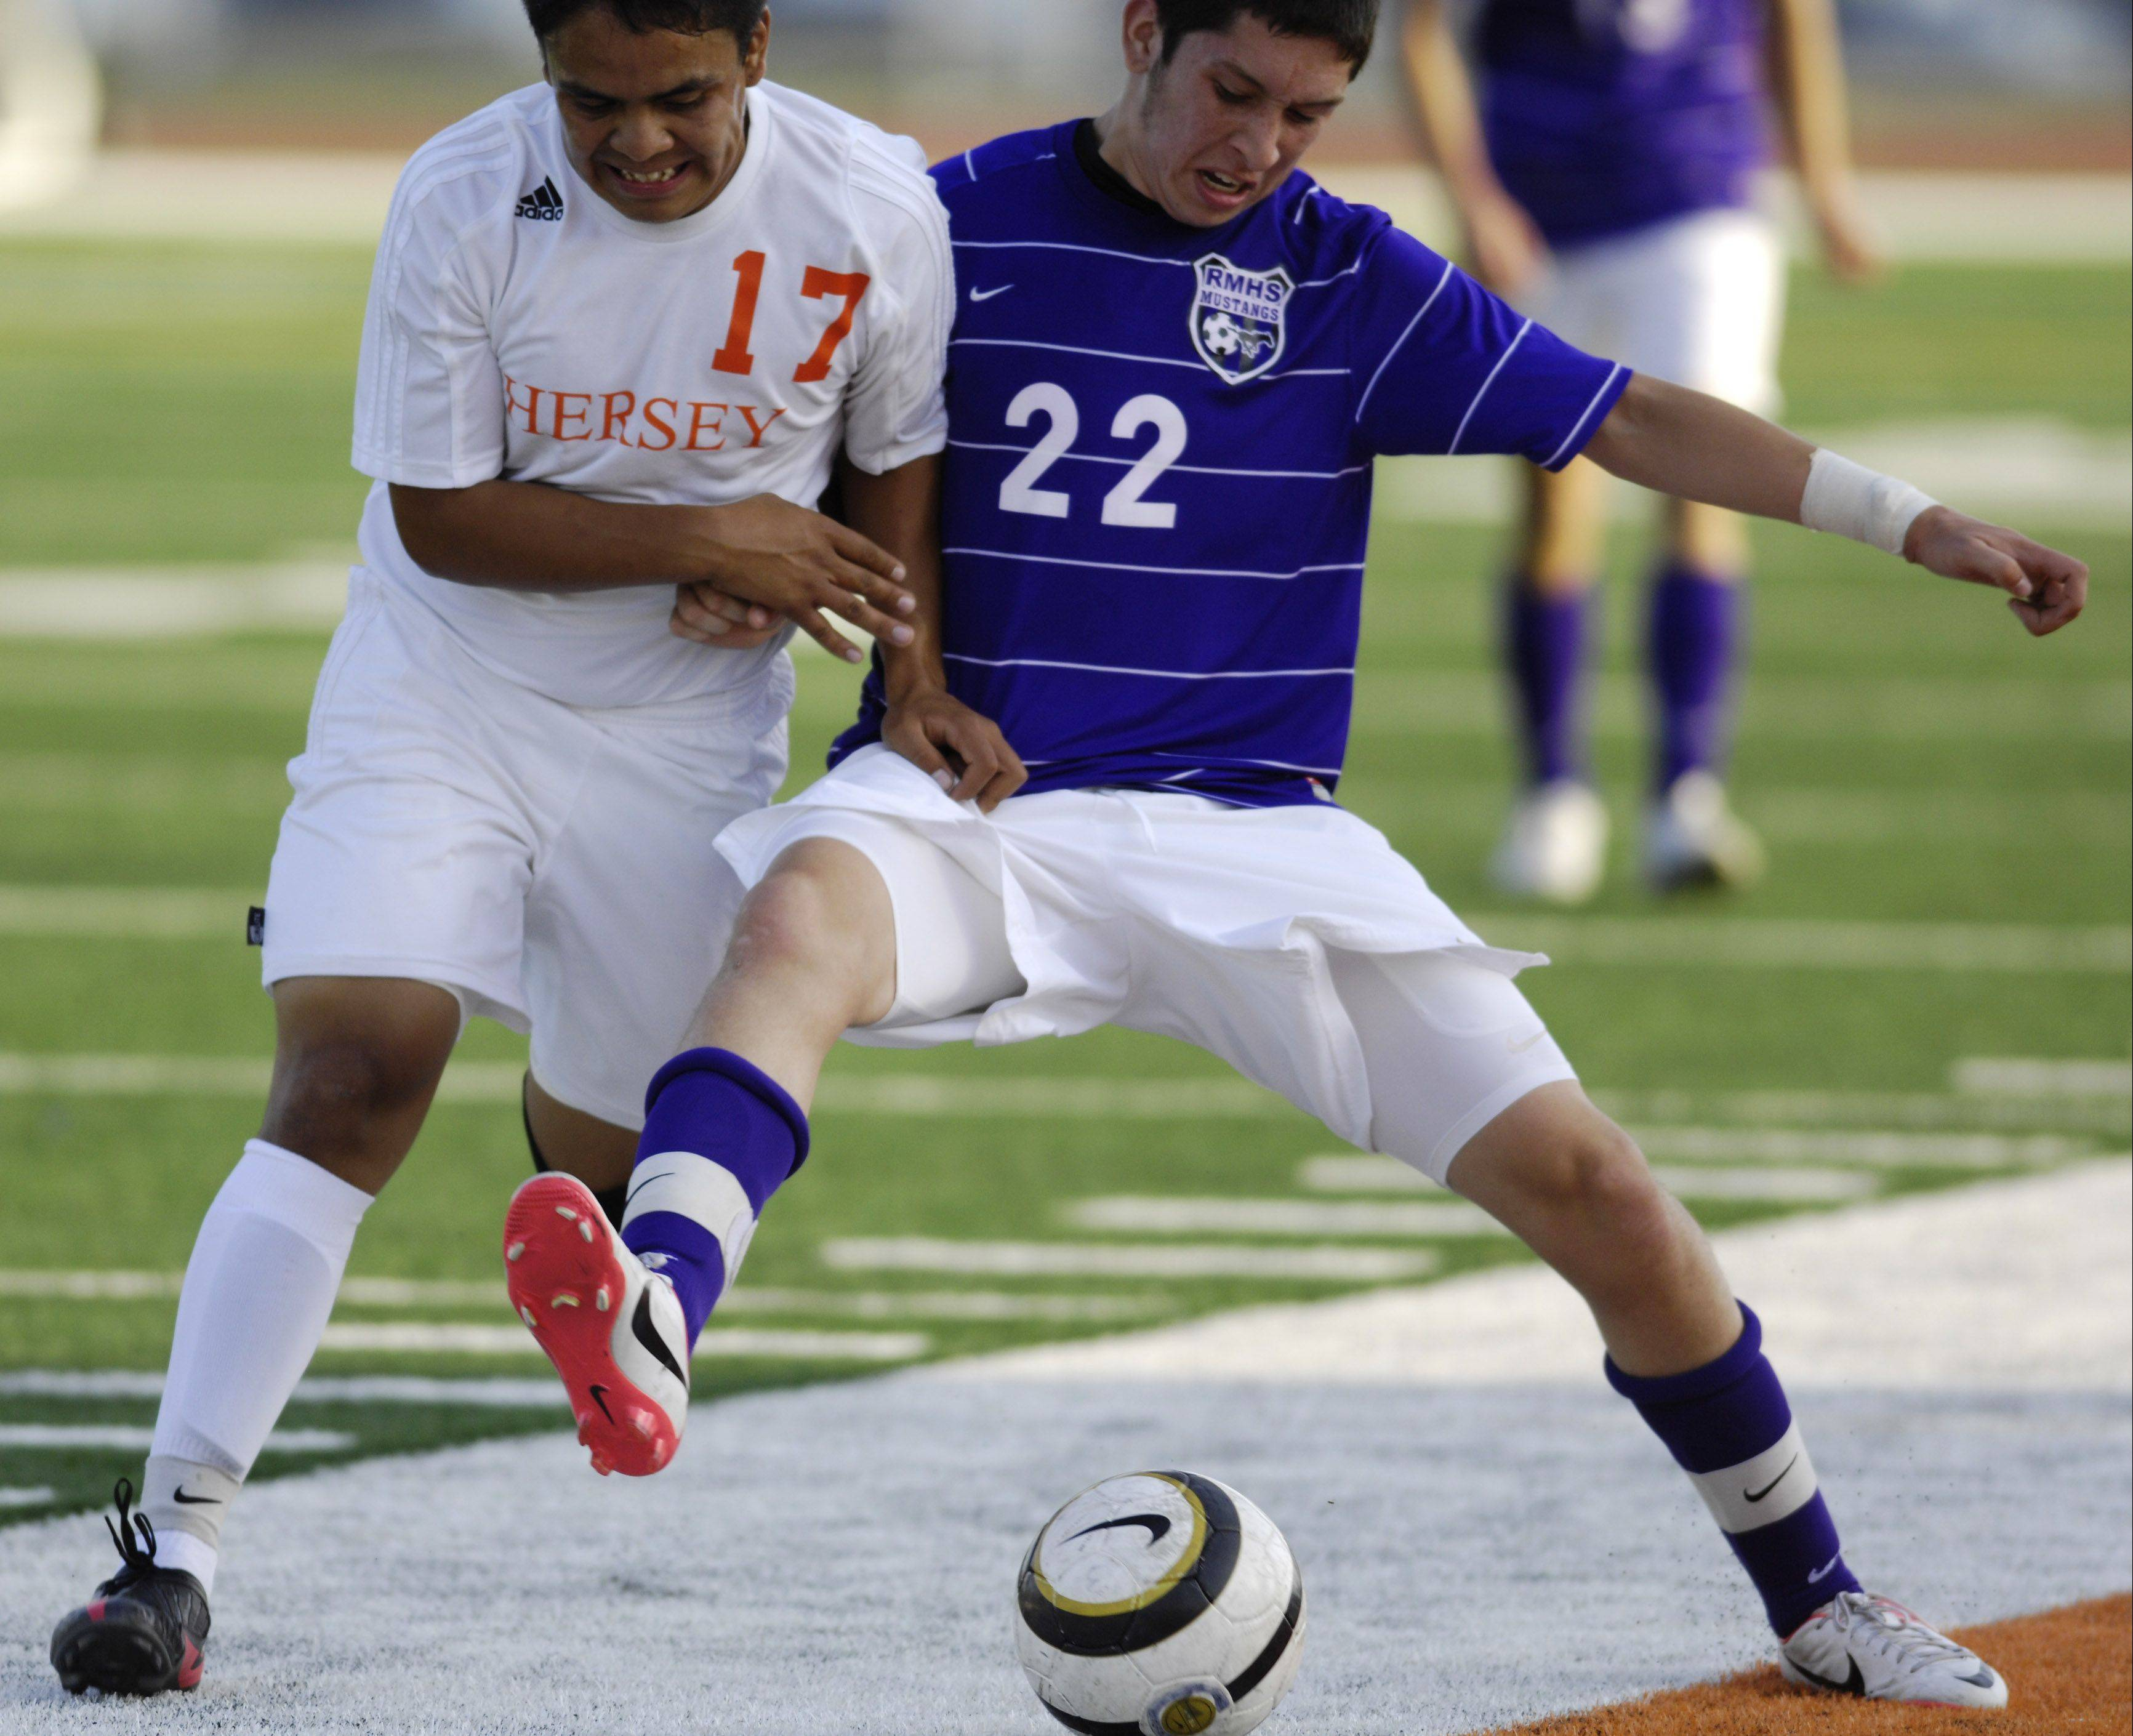 Hersey's Ben Juarez, left, and Rolling Meadows' Freddy Zarate battle for position along the sideline during Tuesday's game.